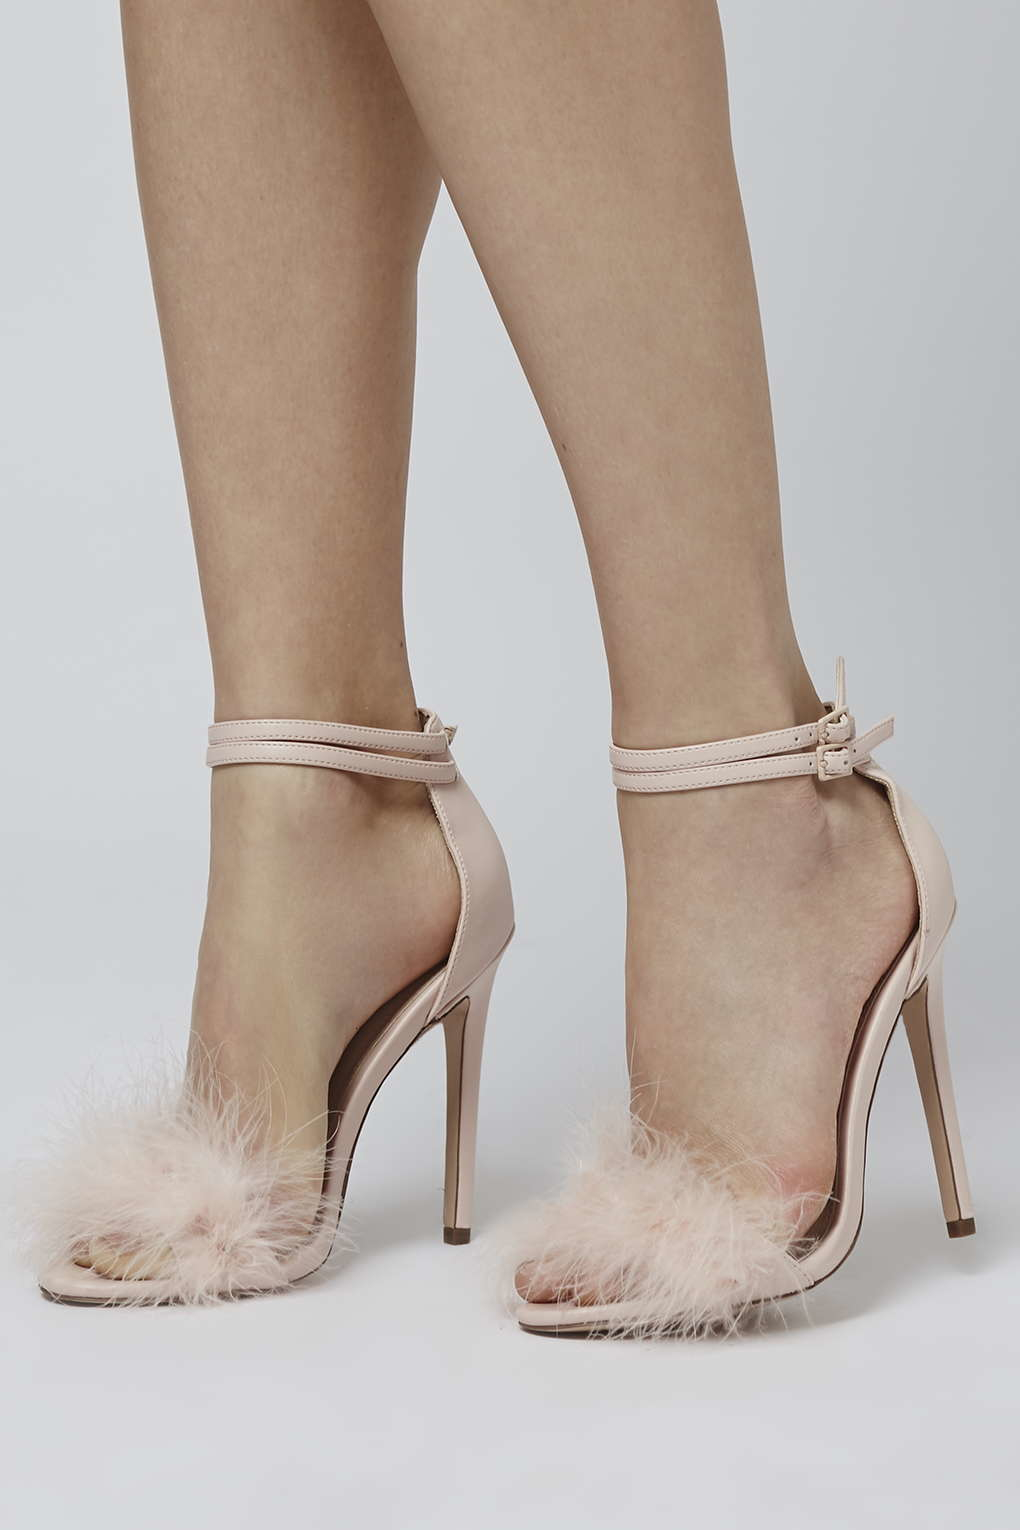 Topshop Reese Feather Sandals in Natural | Lyst